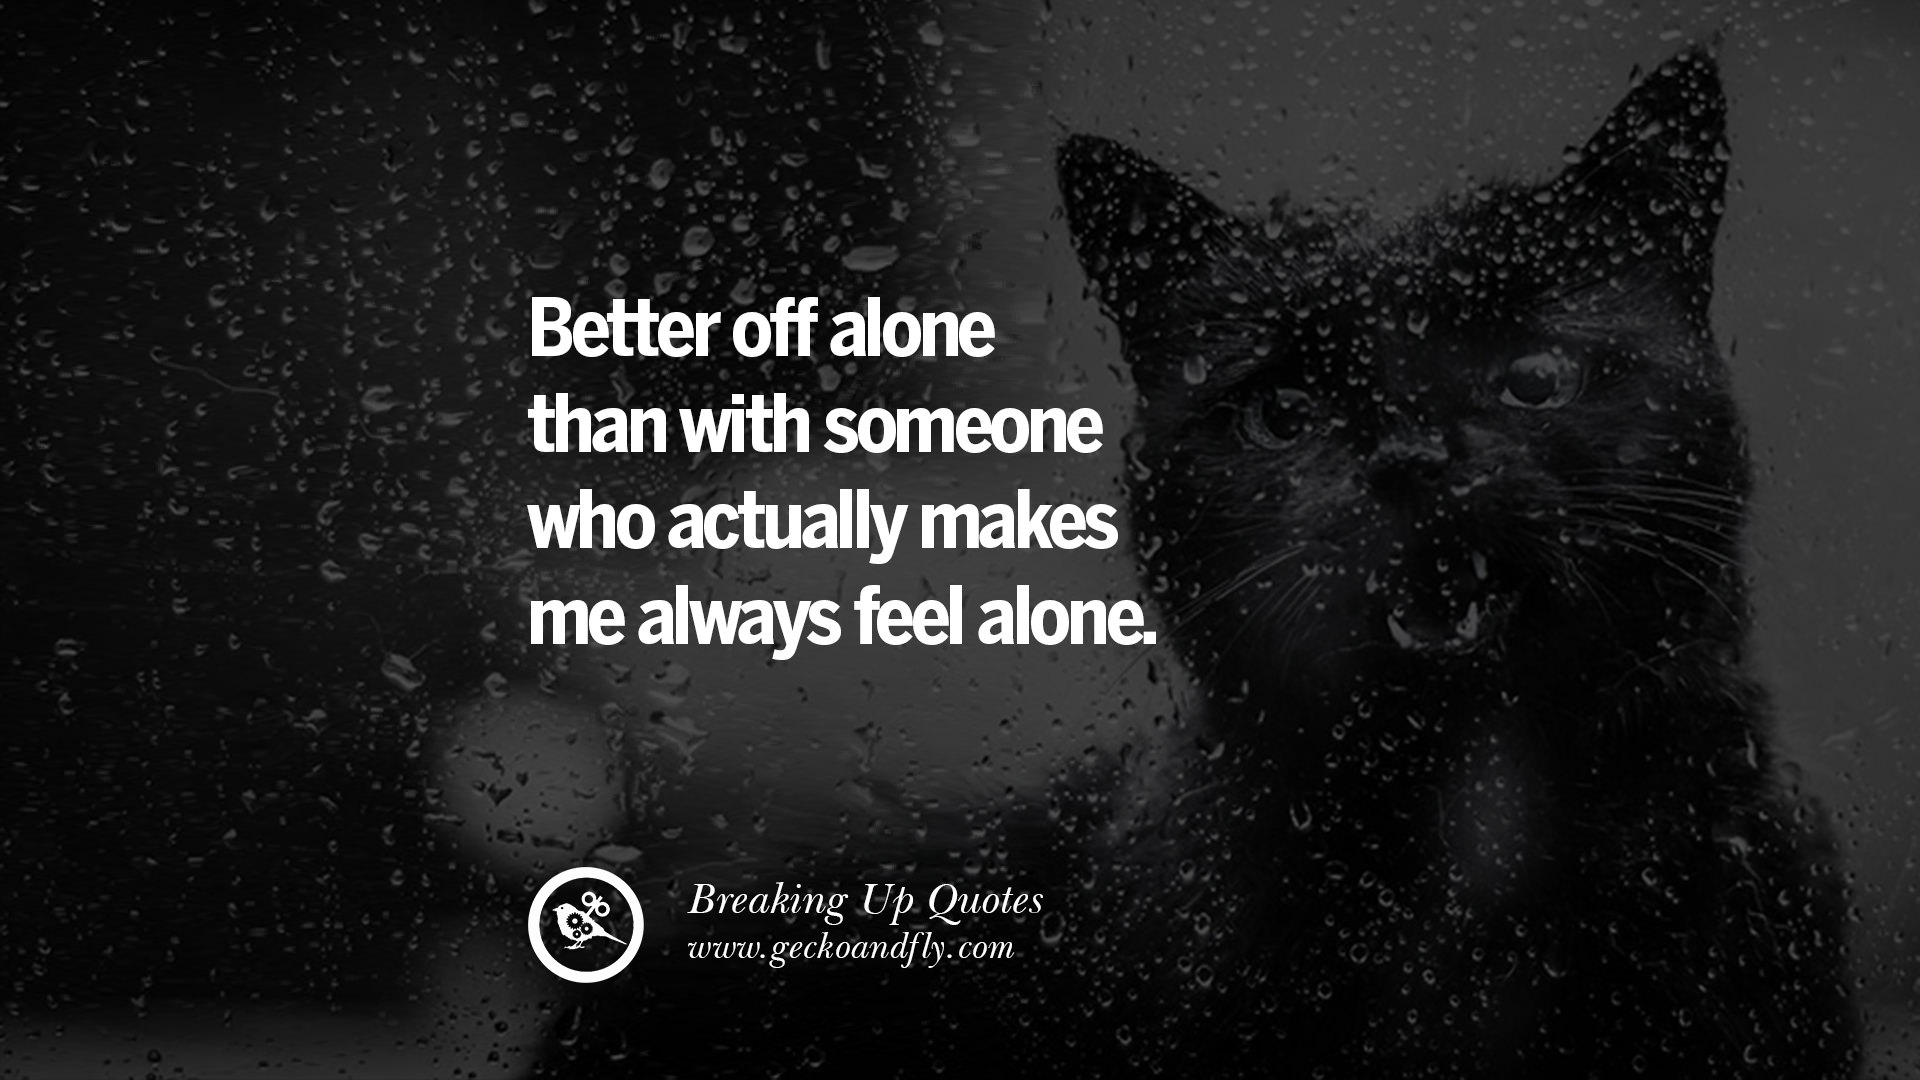 I Feel Alone Quotes 40 Quotes On Getting Over A Break Up After A Bad Relationship